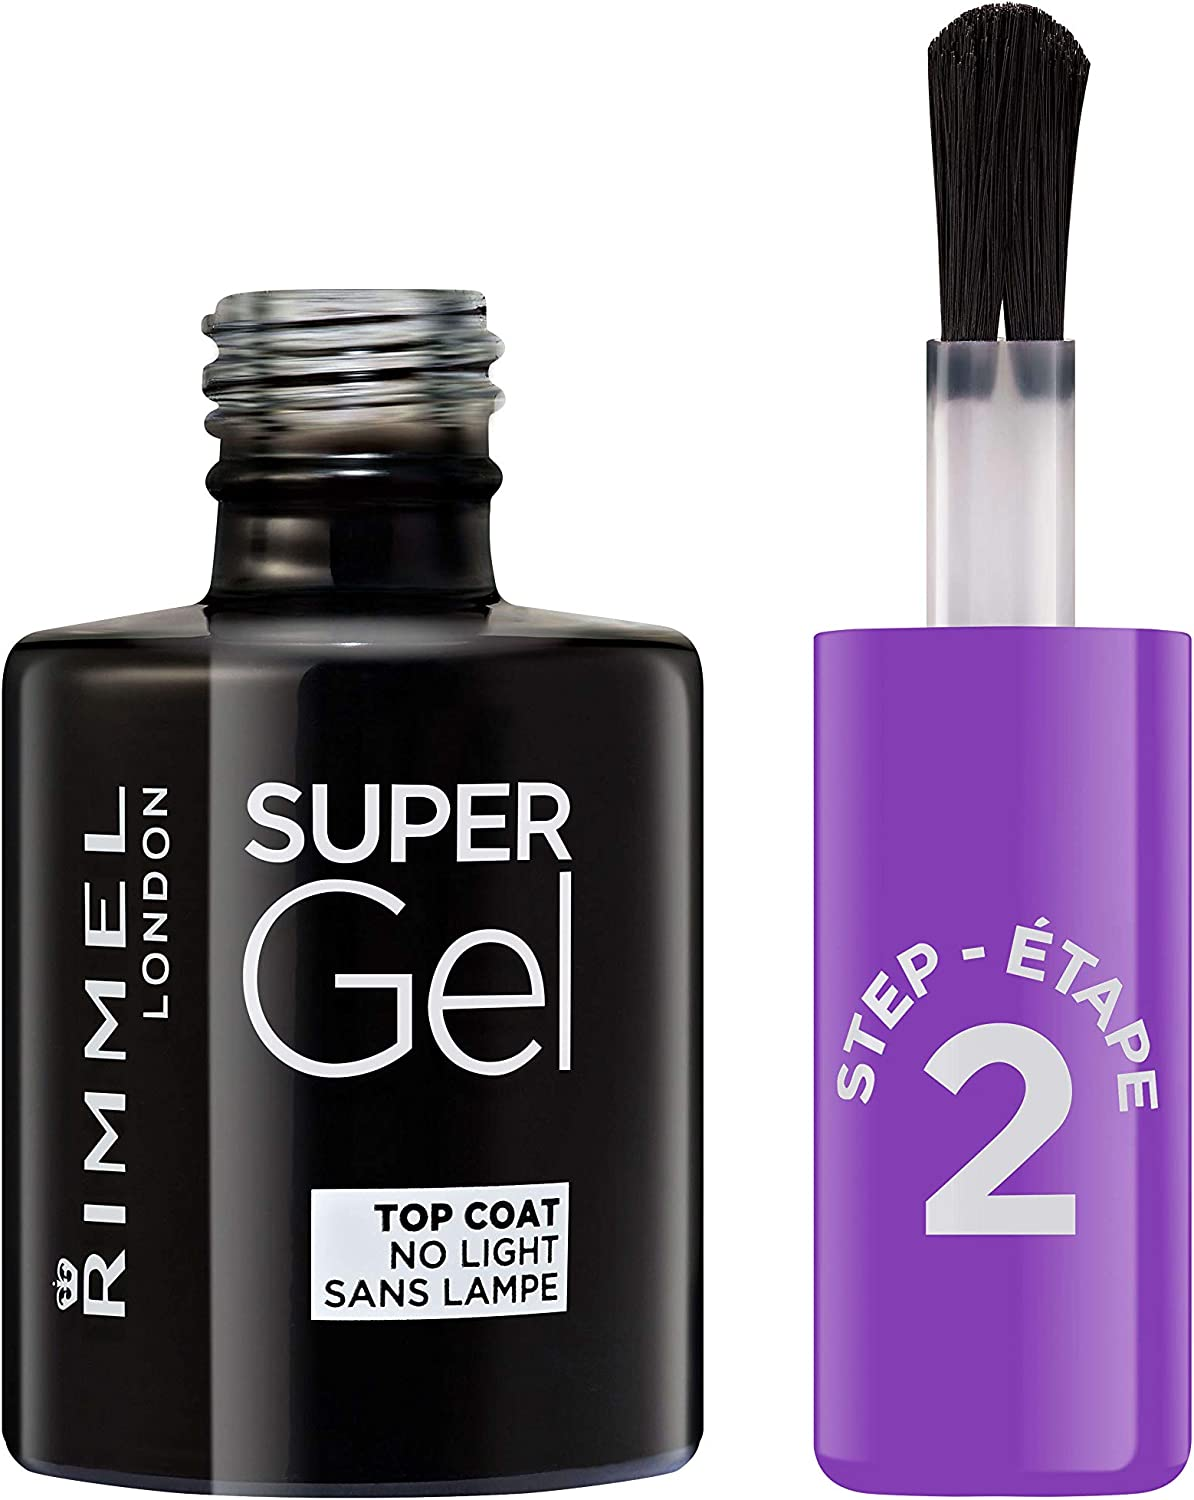 Rimmel London Super Gel Top Coat Tono Top Coat, 12 ml